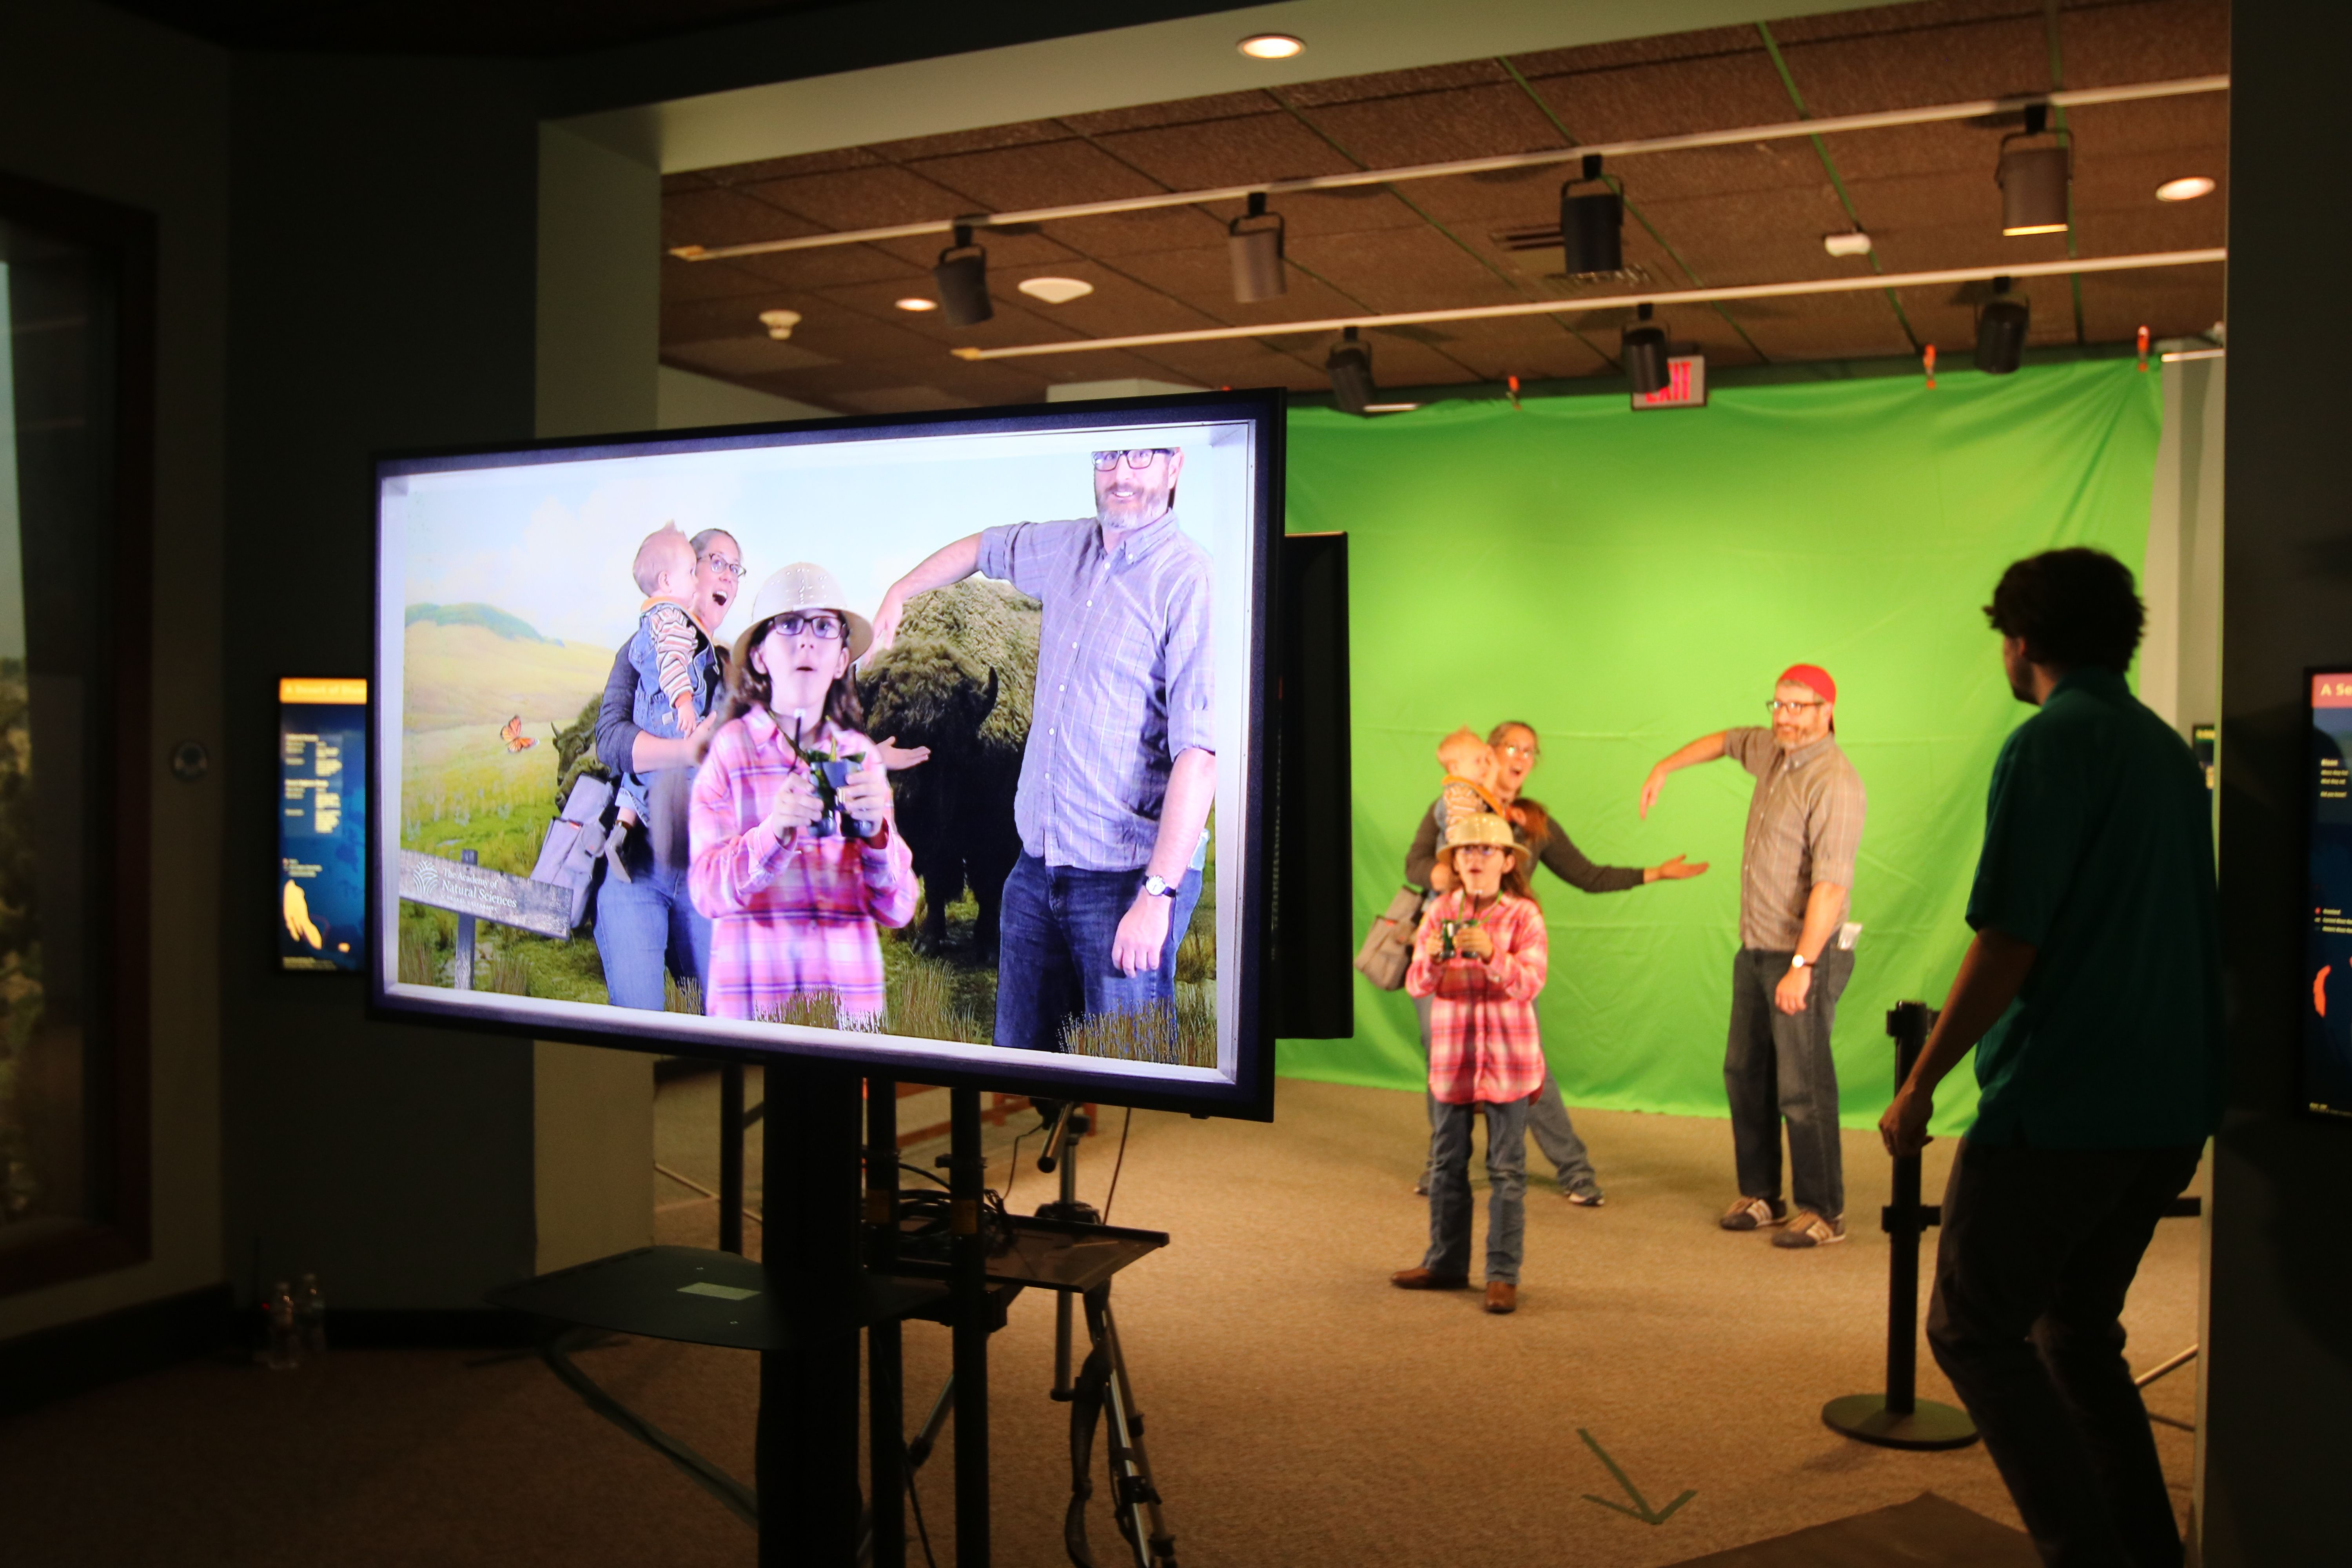 Family uses green screen to explore diorama